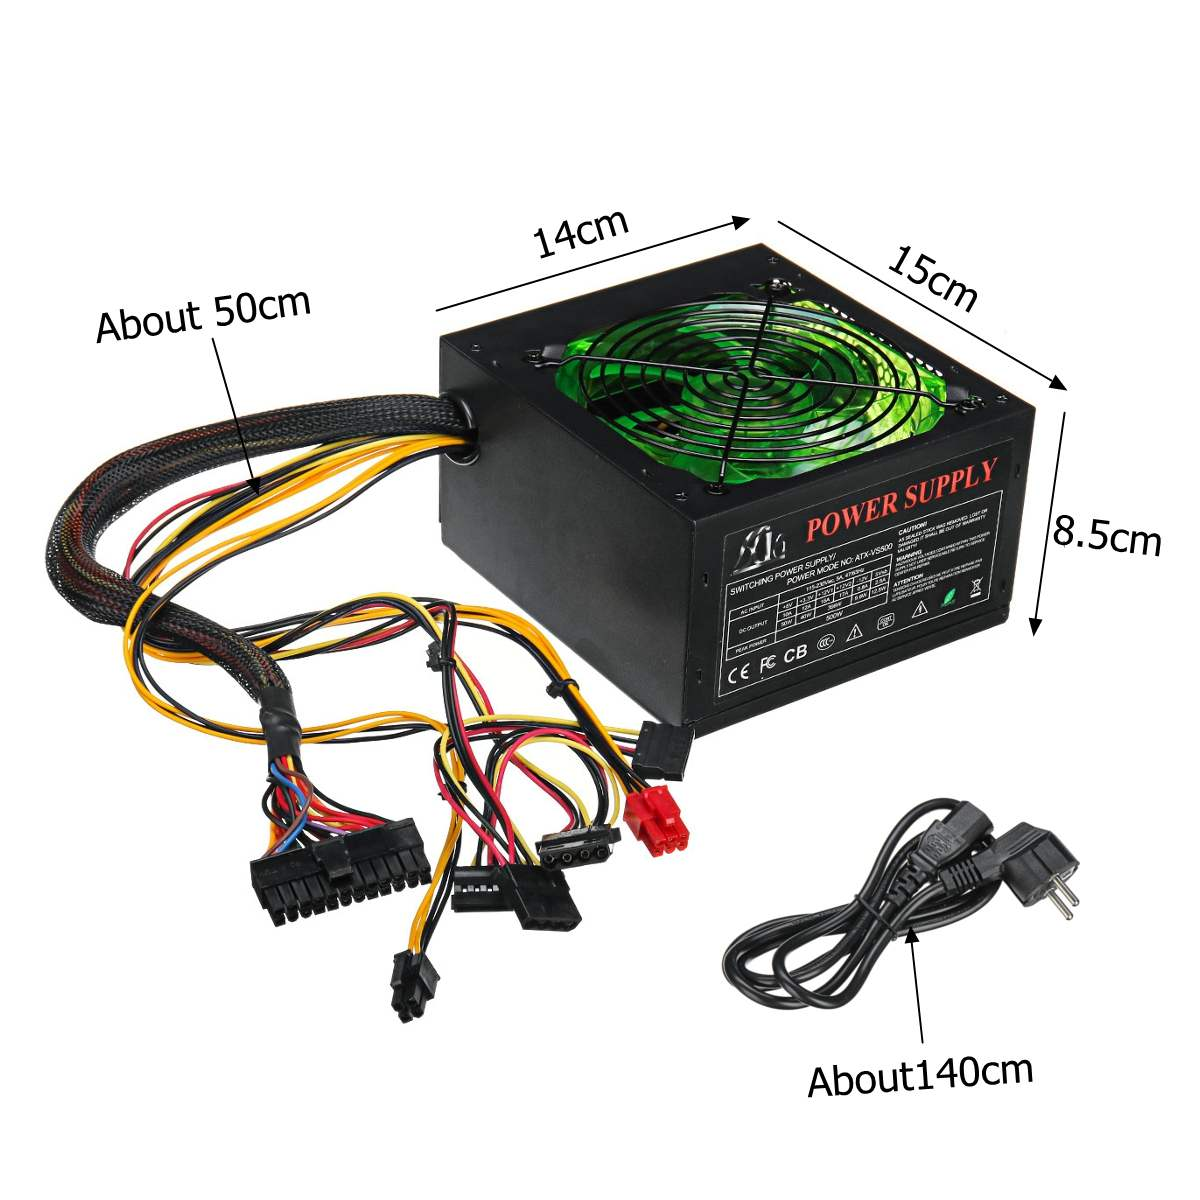 500W Power Supply 120mm LED Fan 24 Pin PCI SATA ATX 12V PC Computer Power Supply For Desktop Gaming